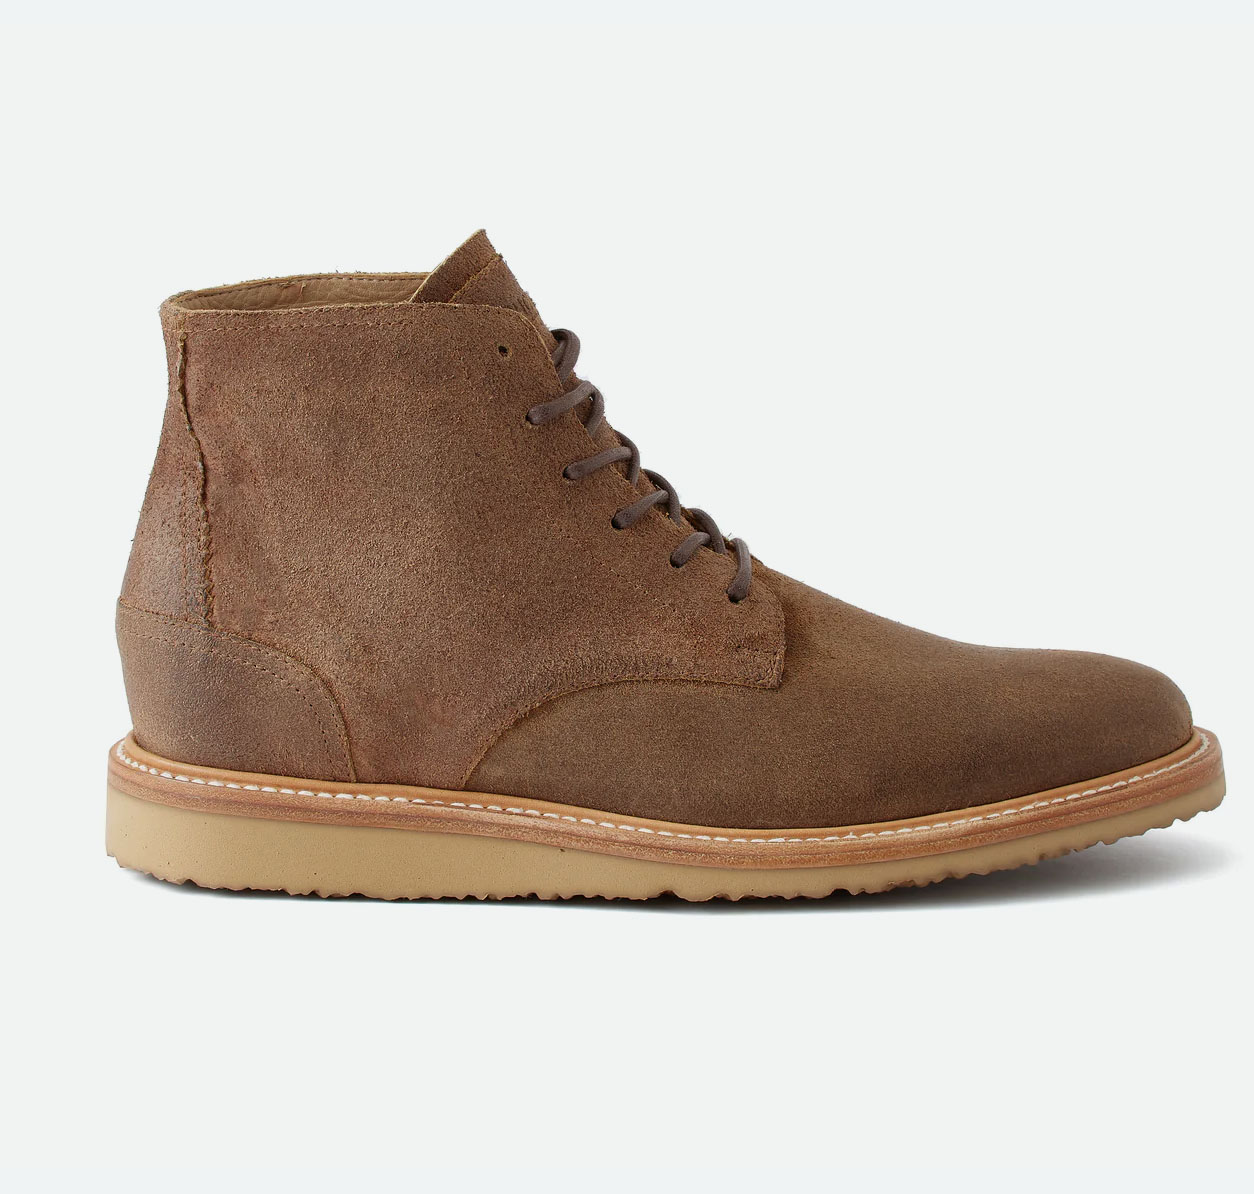 winslow suede brown boot for men from huckberry